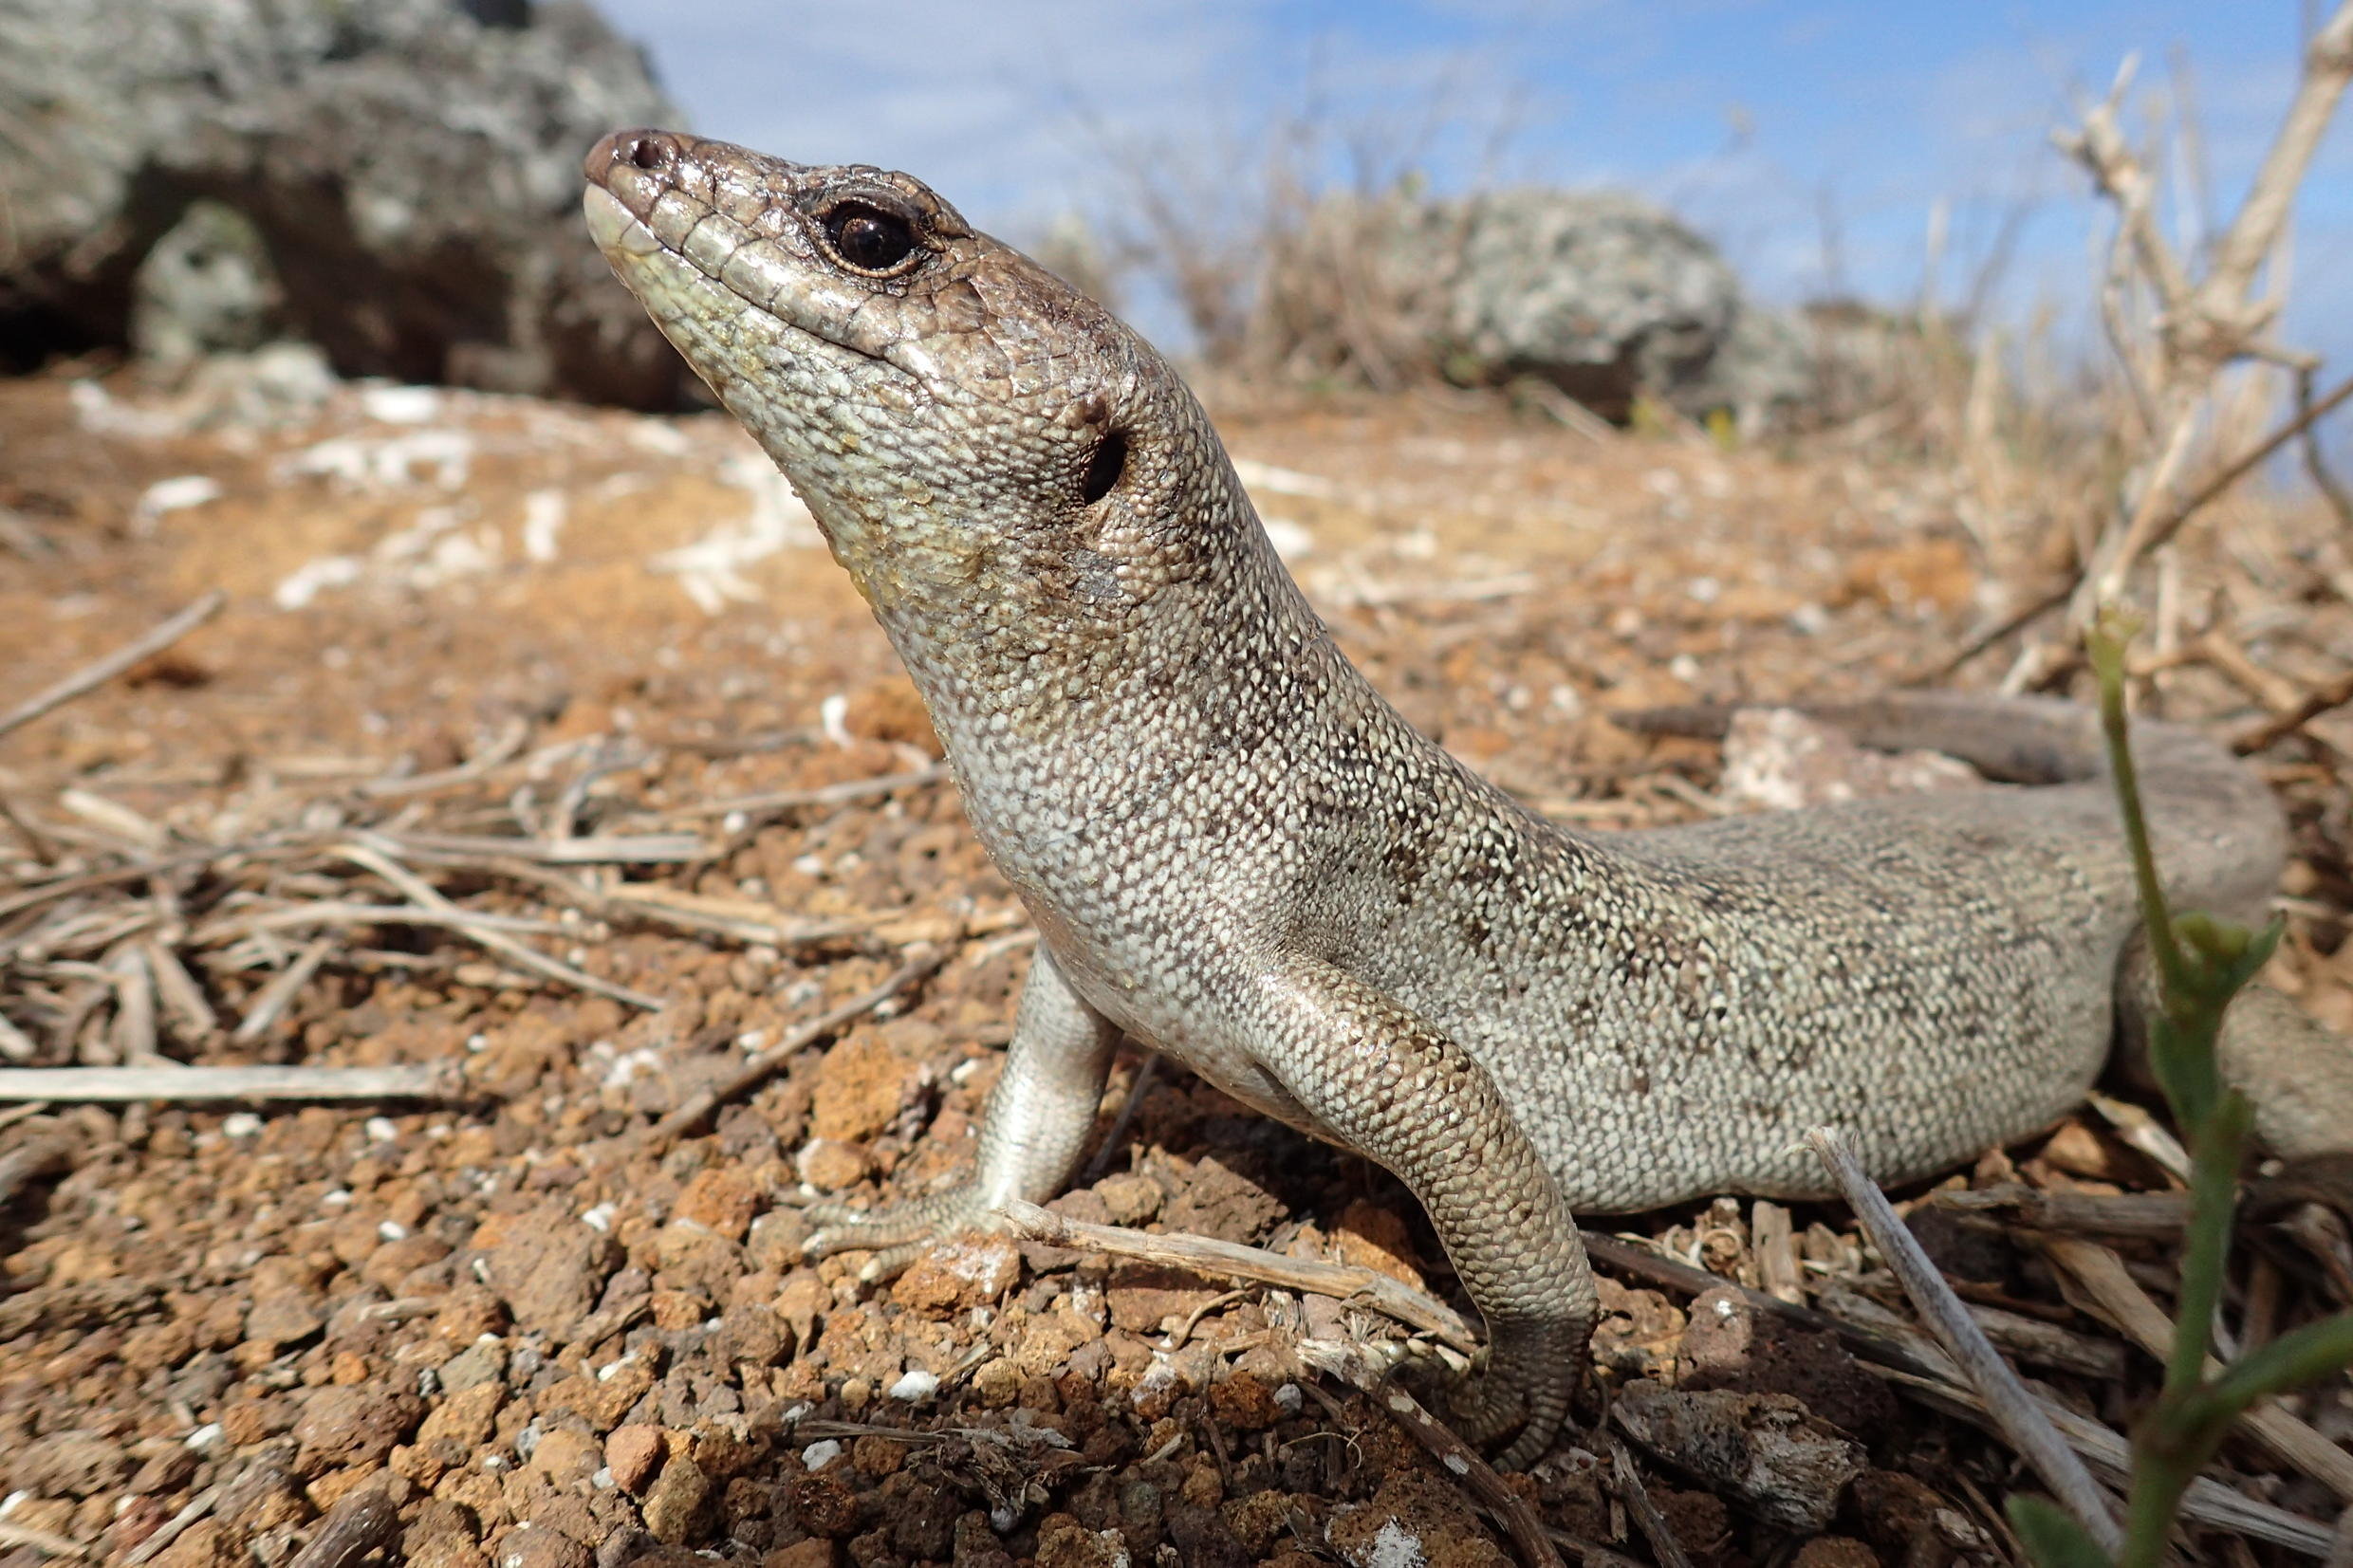 Telfair's skink, which used to be found only on Round Island, was reintroduced to Ile aux Aigrettes between 2006 and 2010.